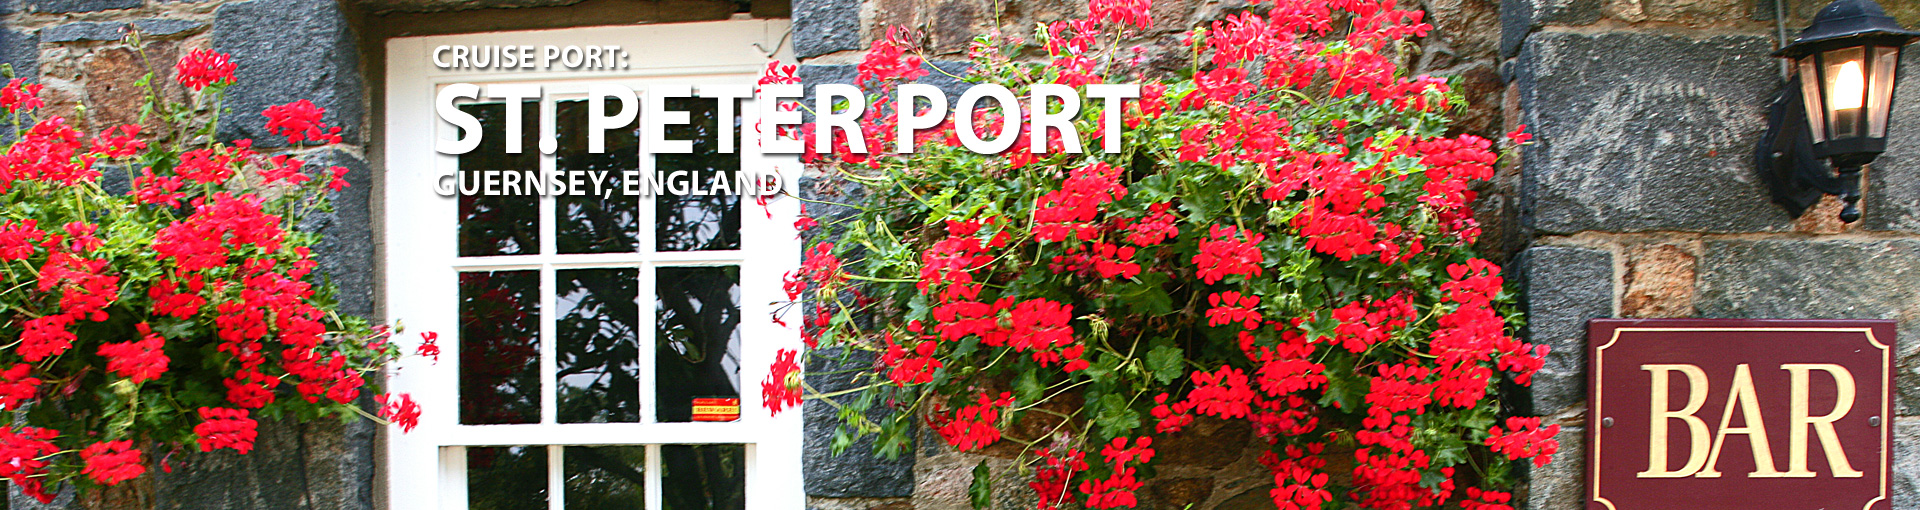 Cruises to St. Peter Port (Guernsey), England